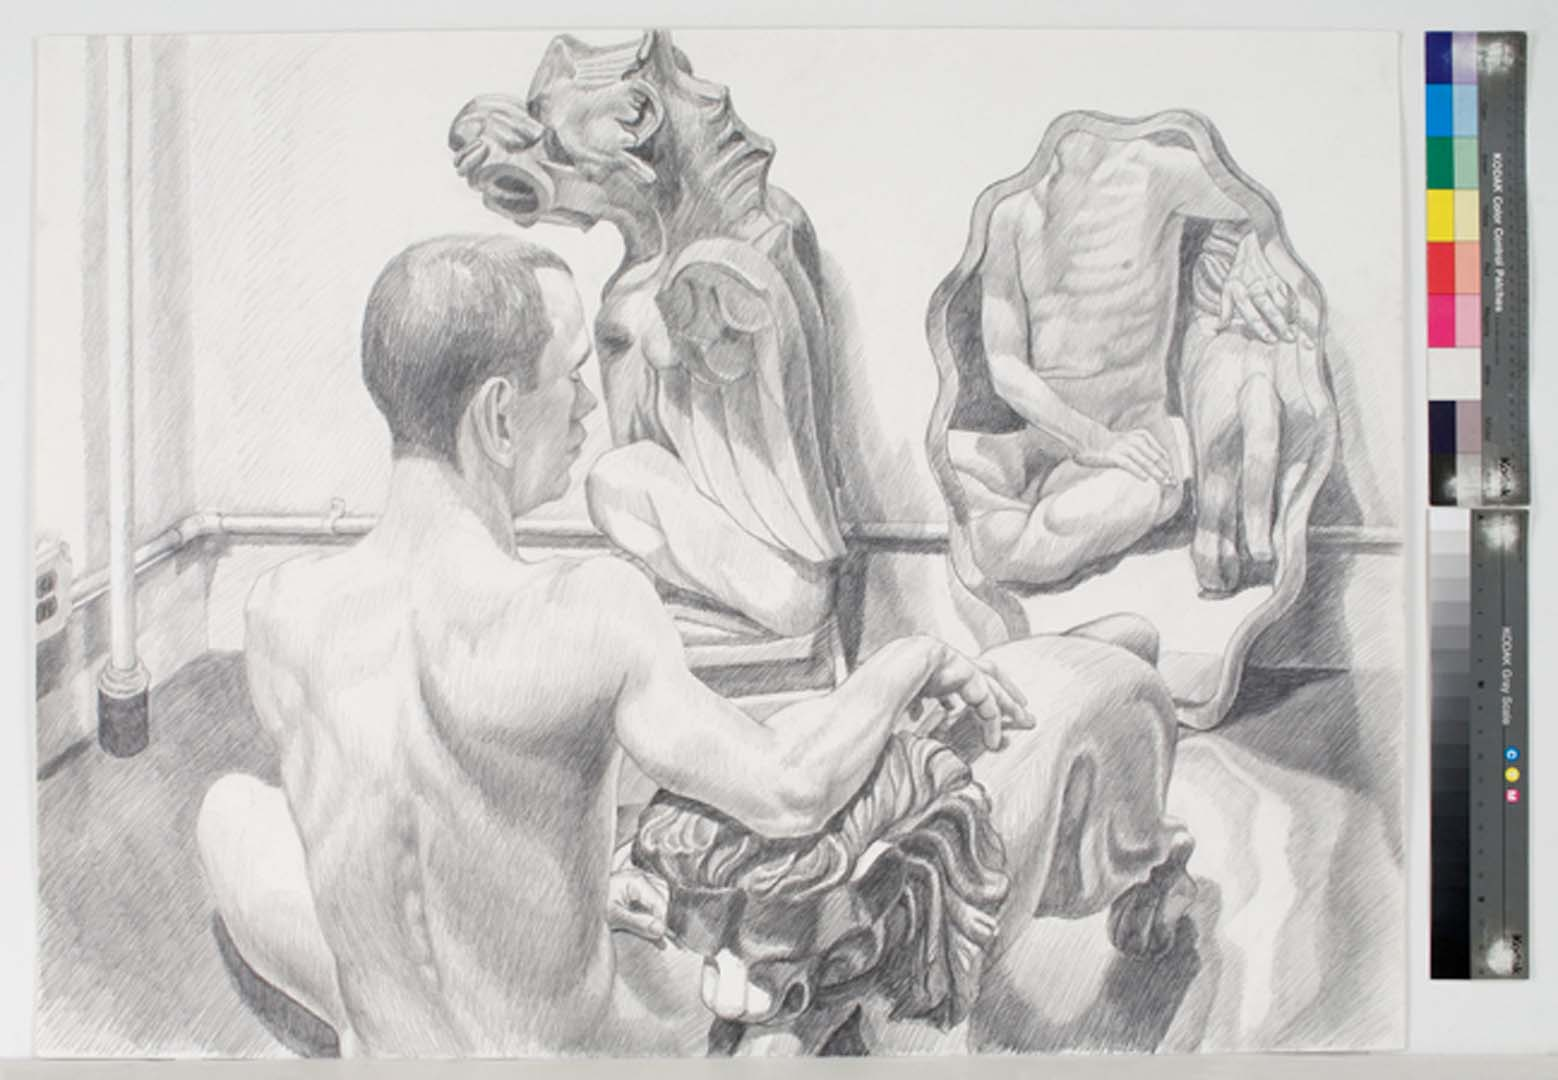 1990's - Model with Gargoyle, Lion, and Mirror - Pencil - 30x40